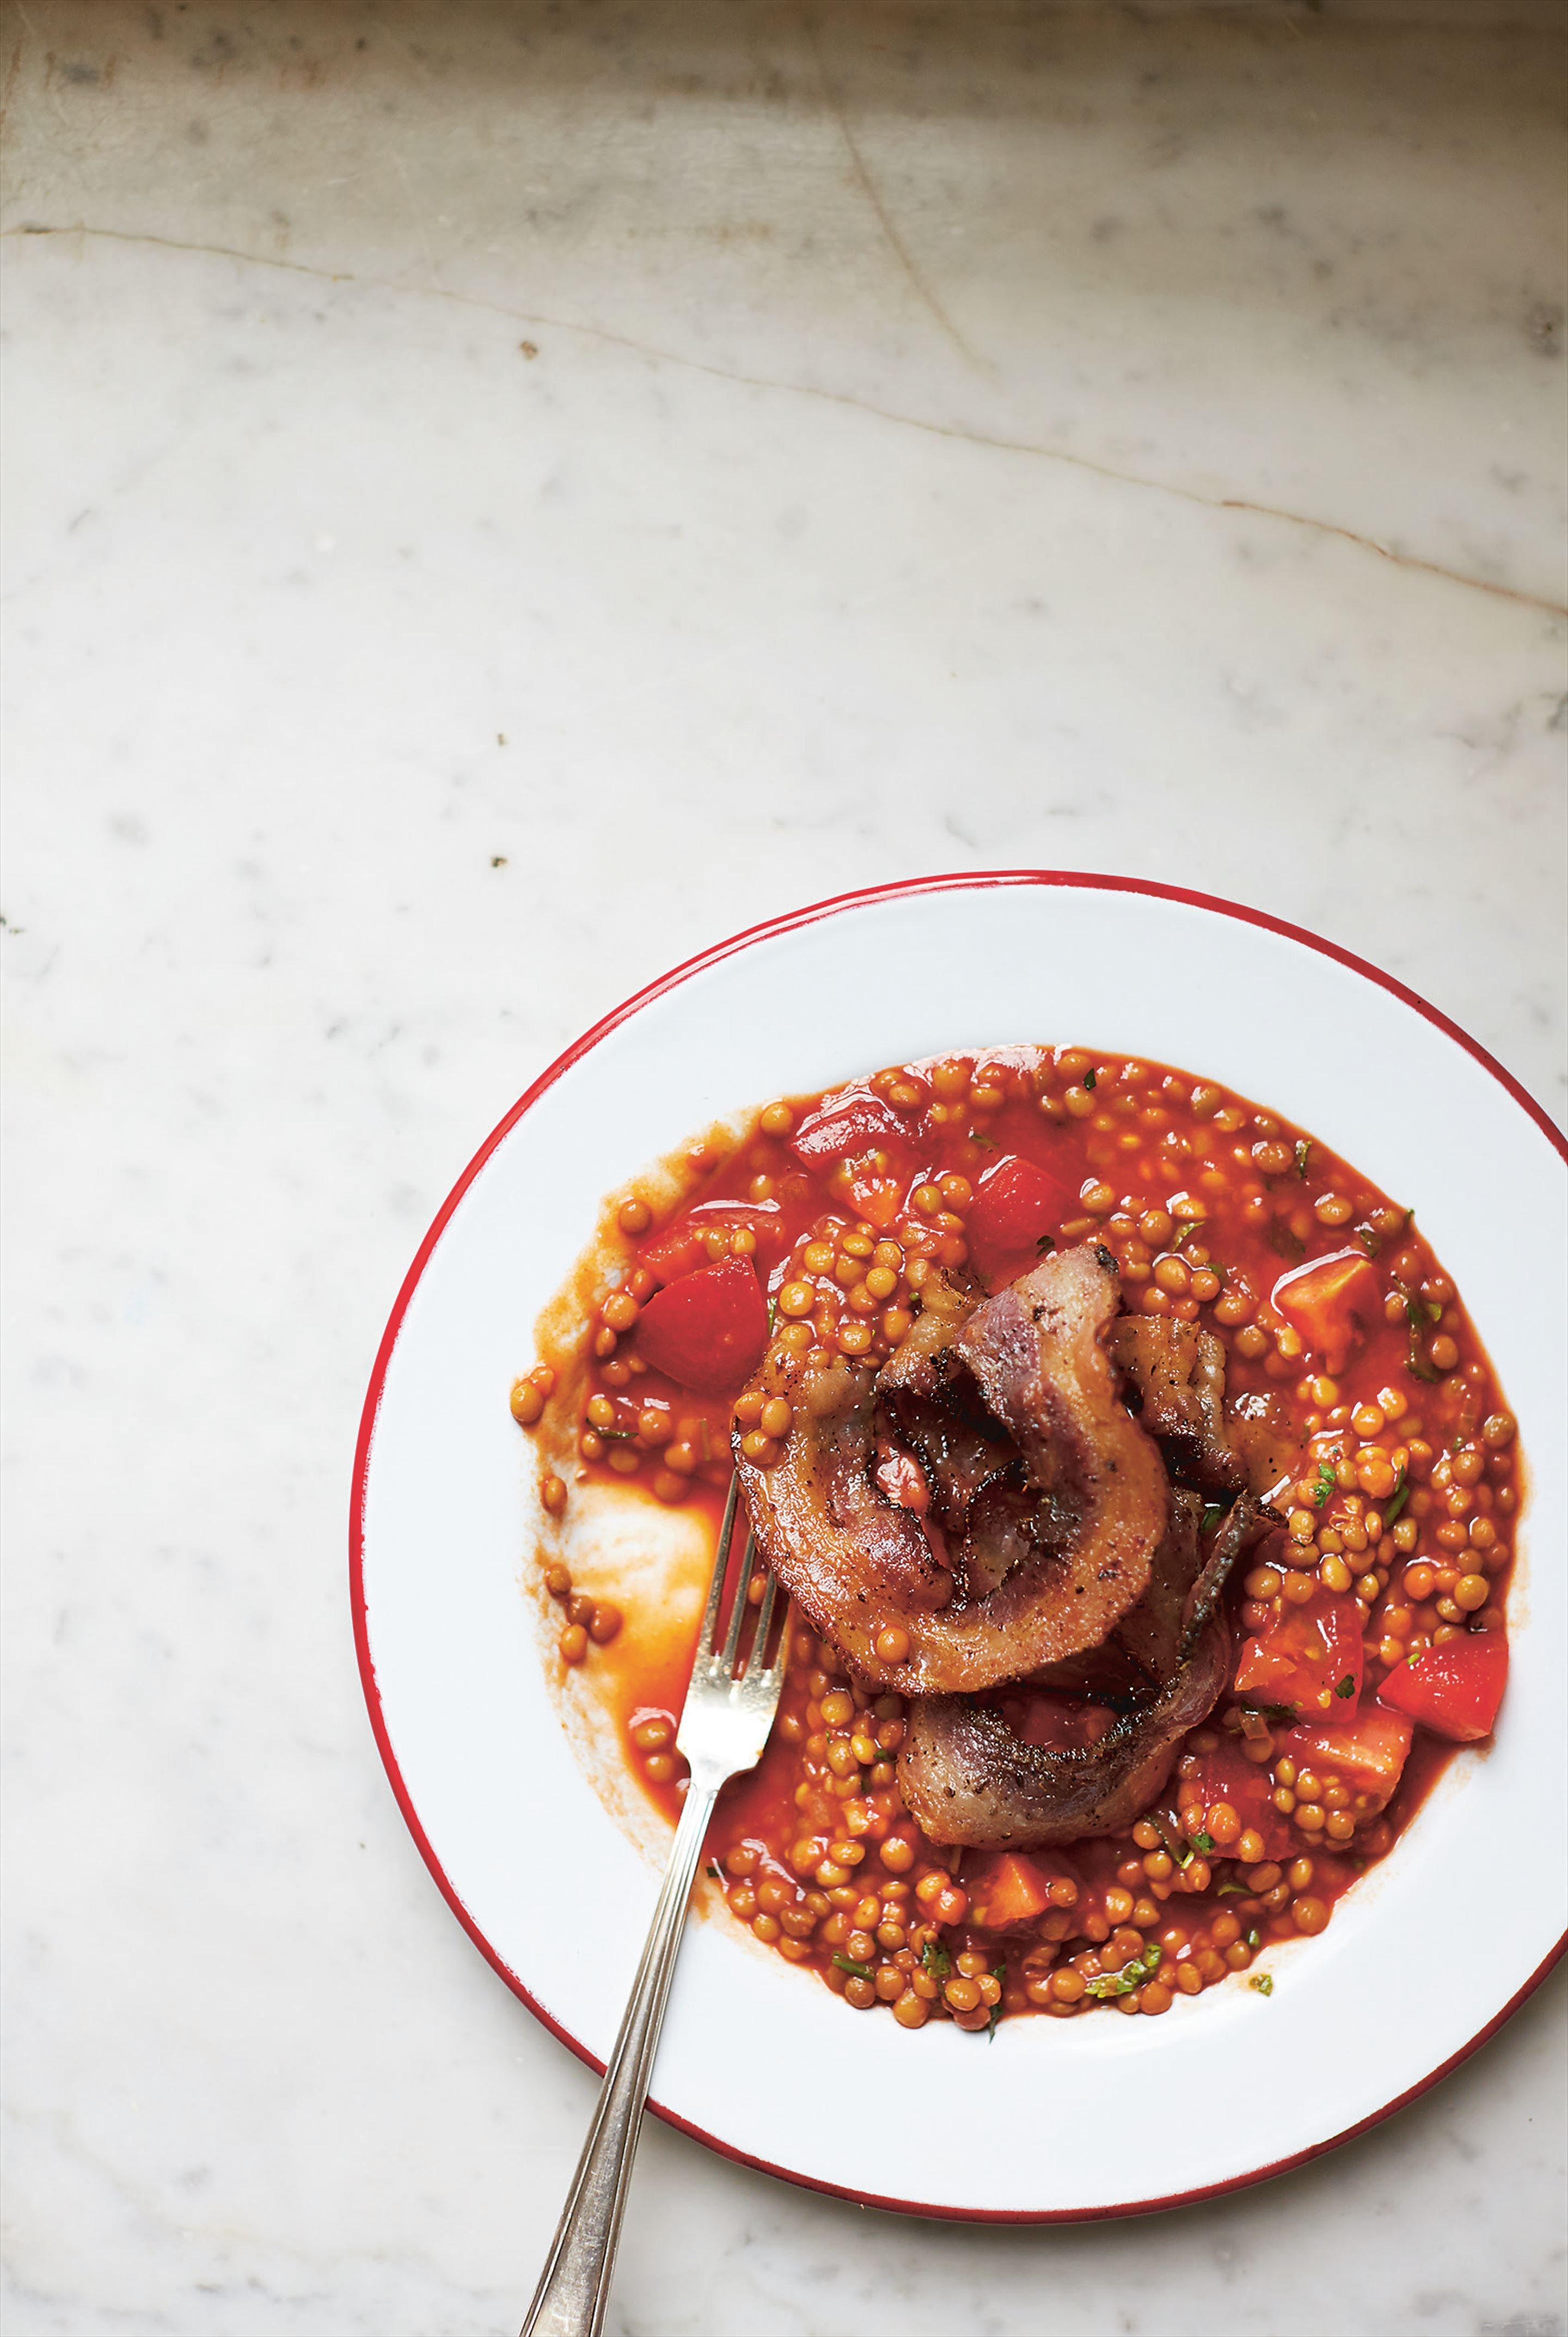 Lentils with pancetta